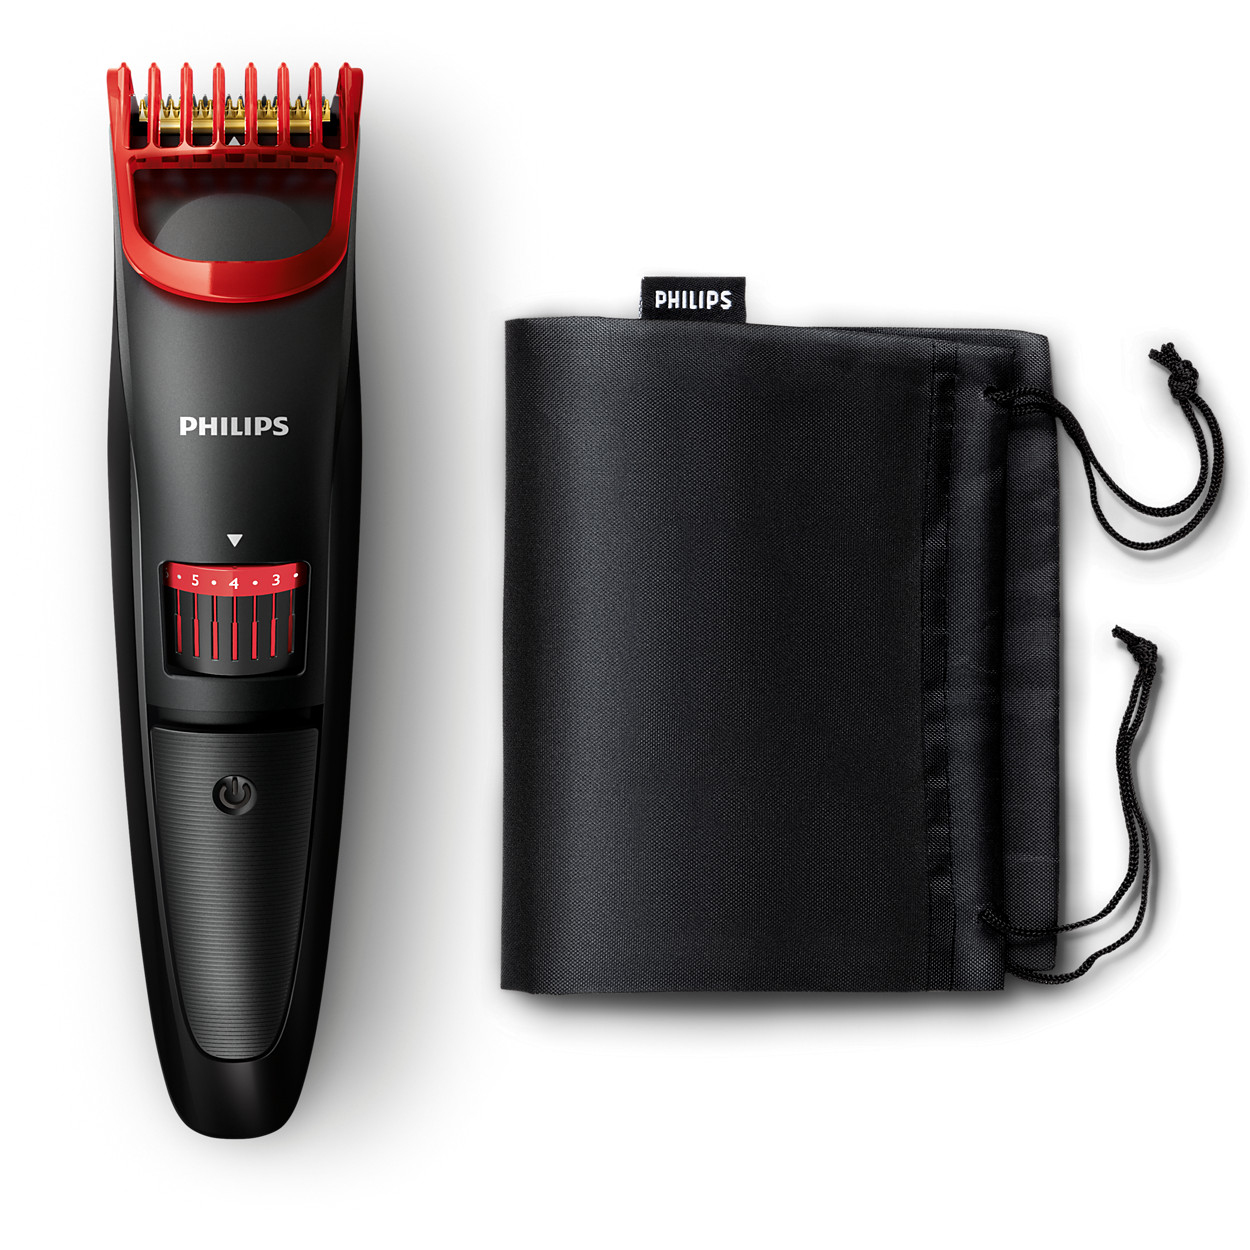 buy the philips beardtrimmer series 3000 beard trimmer qt4011 15 beard trimmer. Black Bedroom Furniture Sets. Home Design Ideas